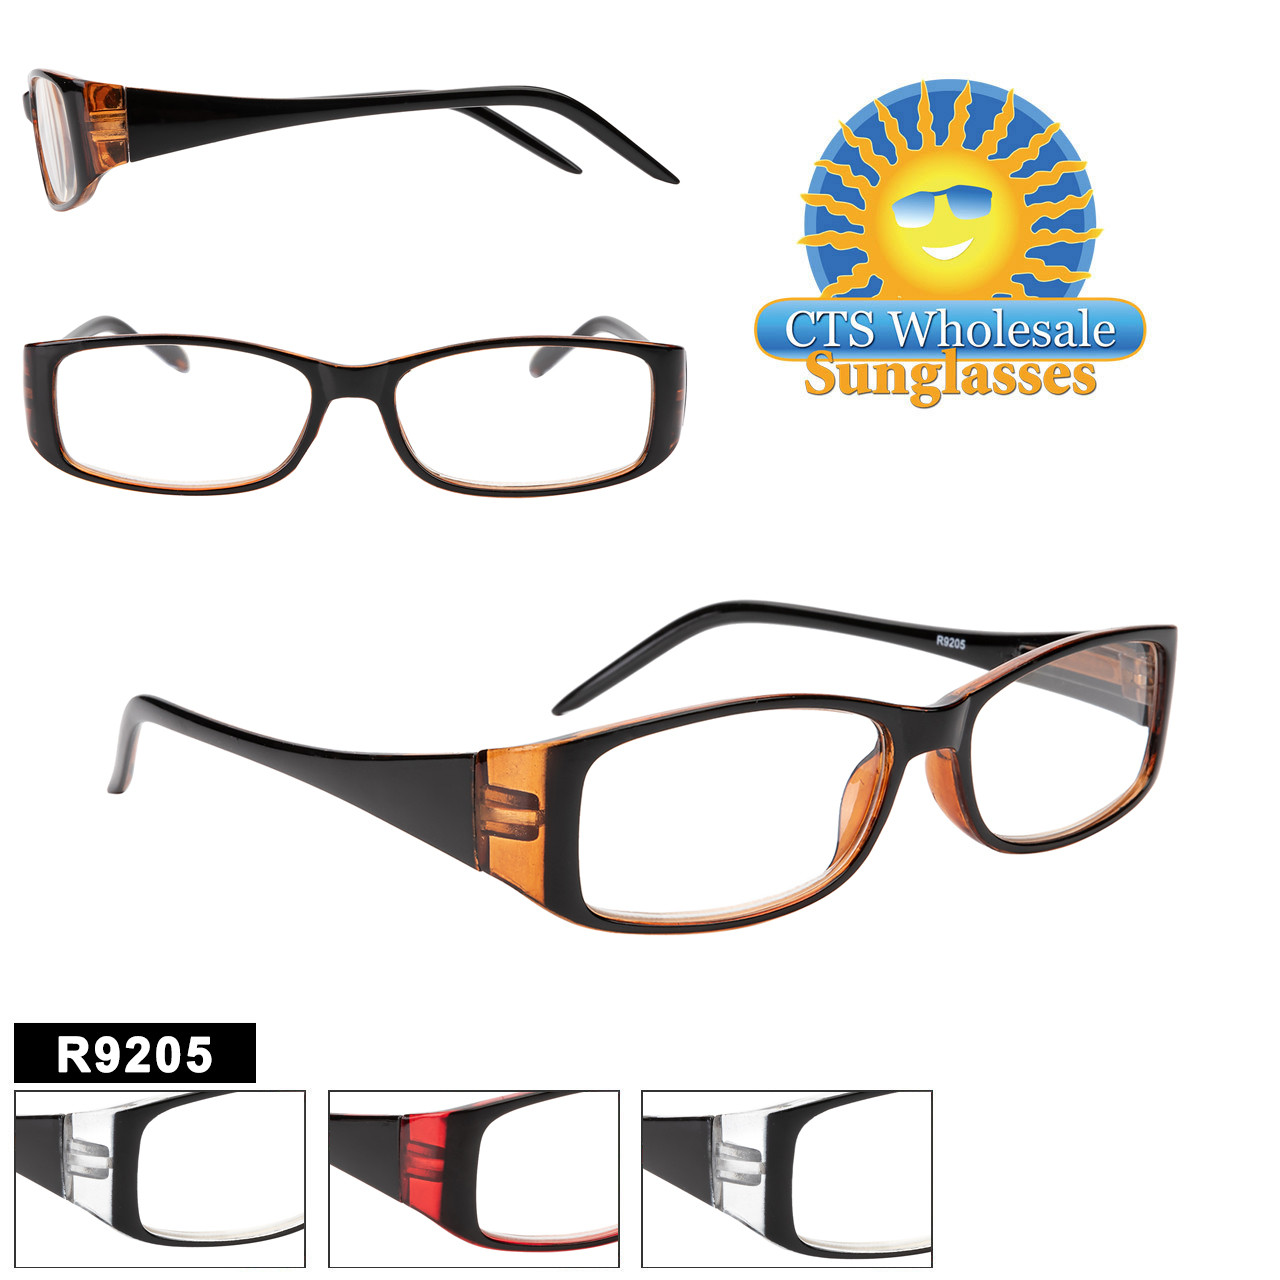 Very Fashionable Reading Glass style comes in 4 dual colored frame choices and a variety of lens powers.